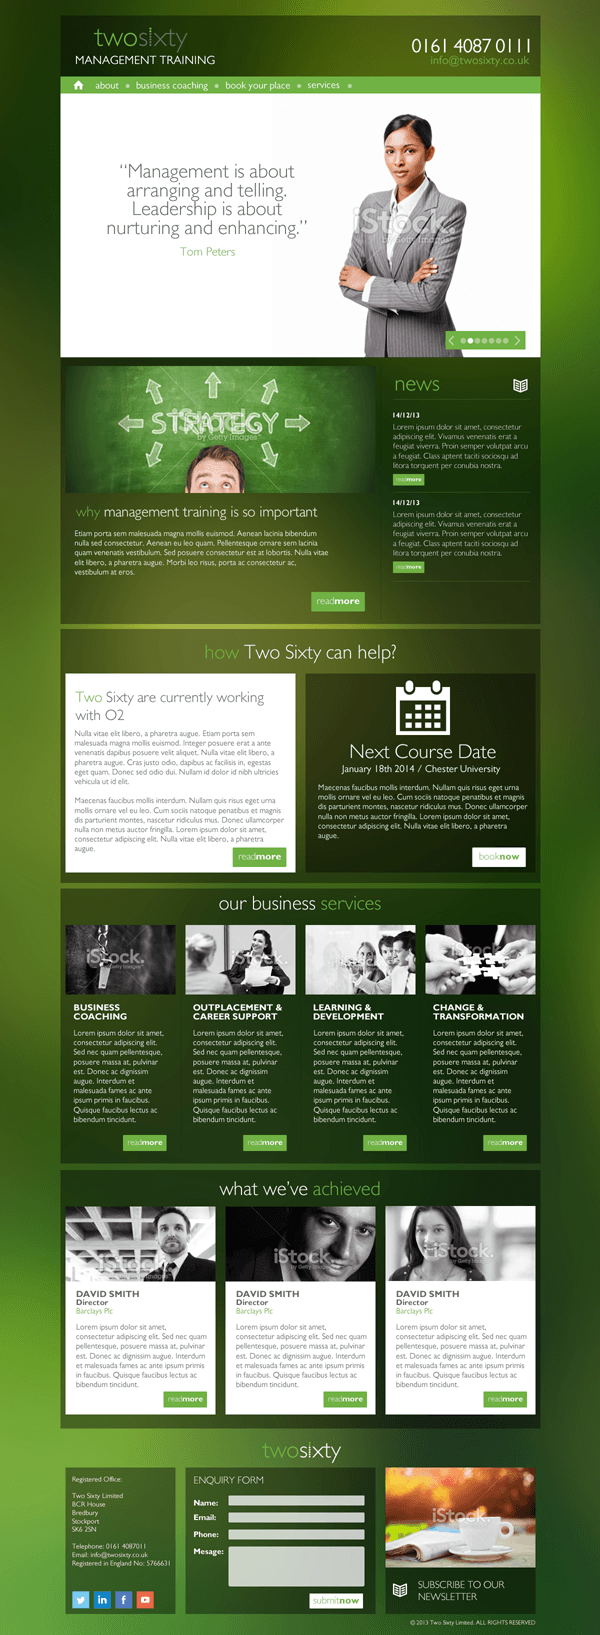 blog-two-sixty-website-redesign-02